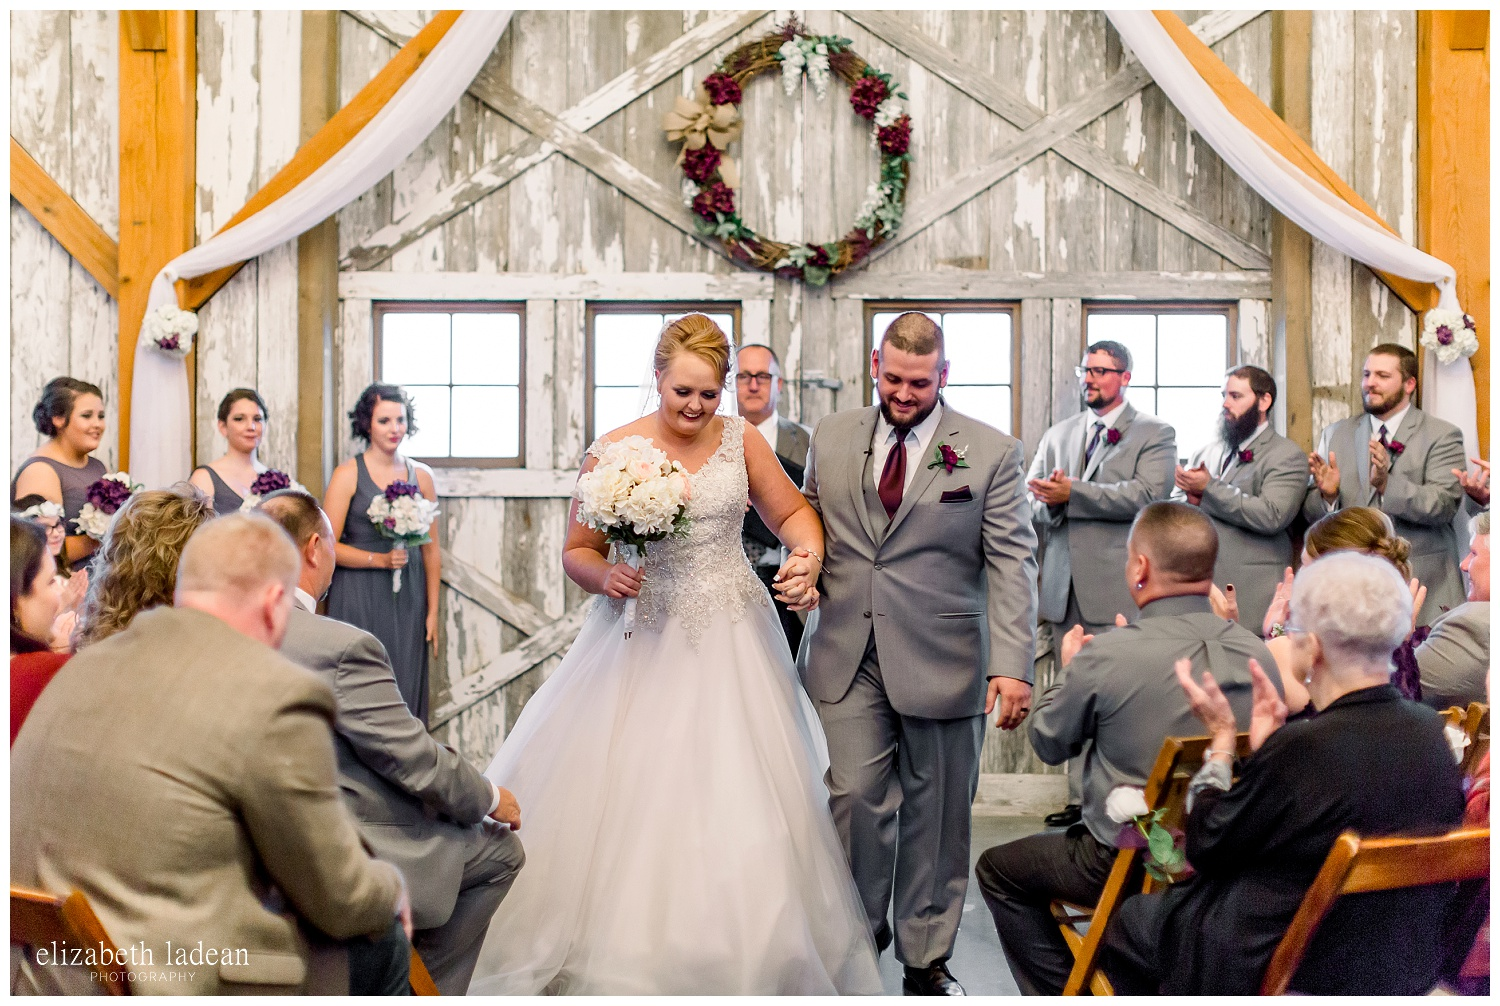 Weston-Timber-Barn-Wedding-Photography-L+A-elizabeth-ladean0photo_1899.jpg